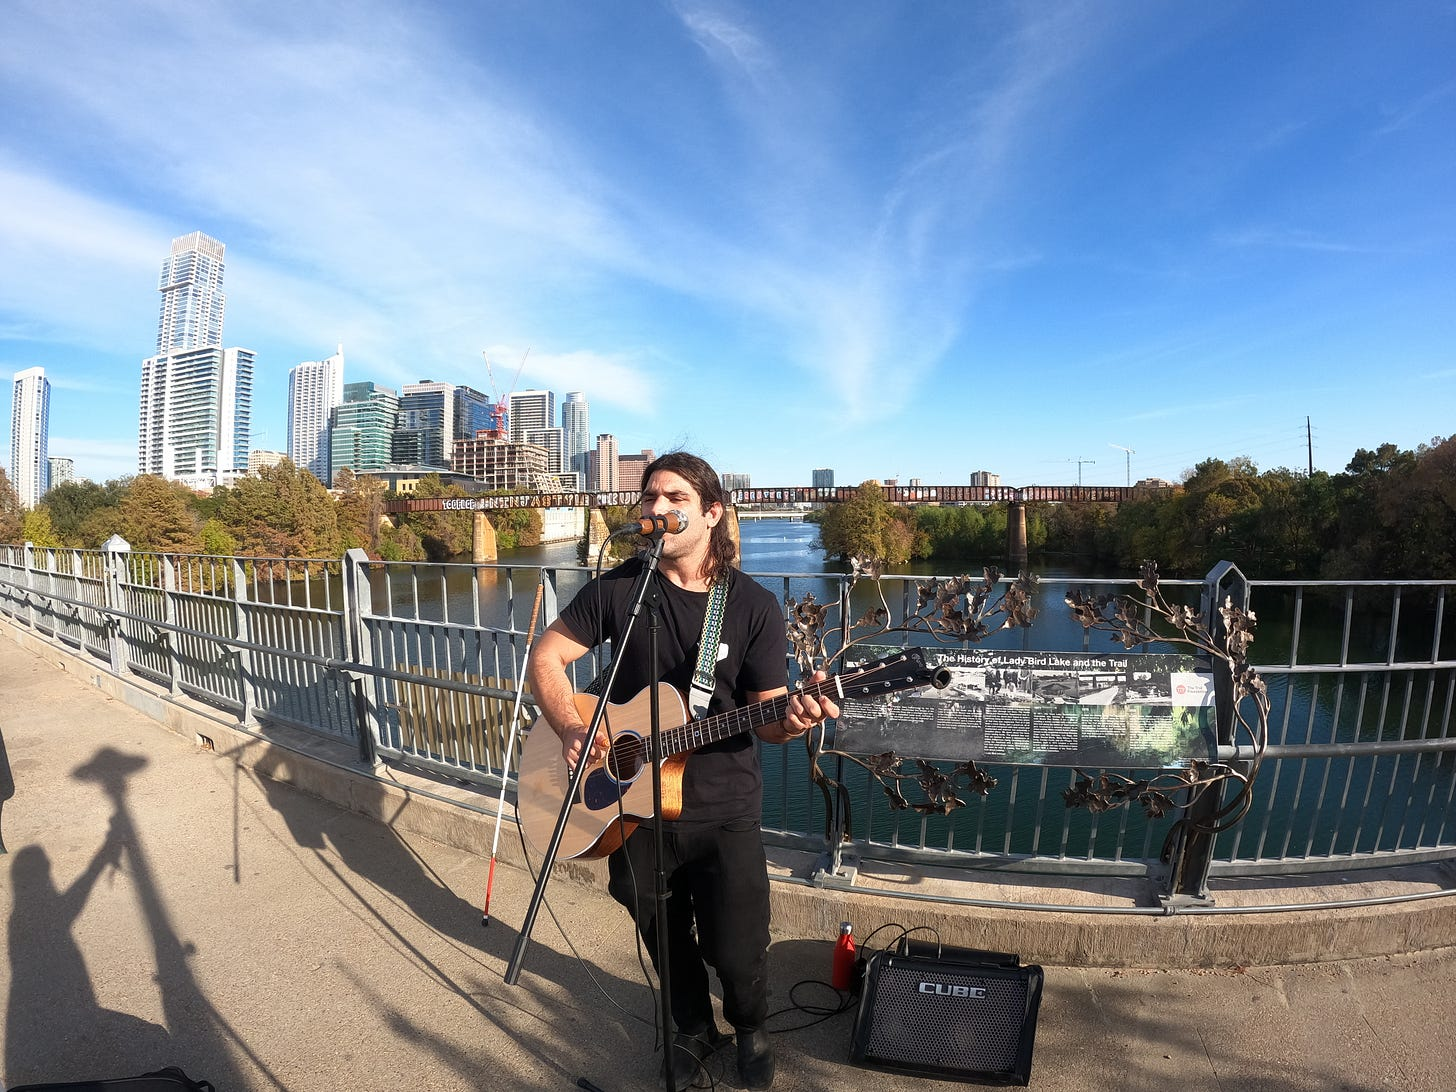 anthony standing on the bridge holding his guitar playing it with his white cane in the background and the city of austin texas in the background there is a river below him and the sky is blue and its nice and hot outside